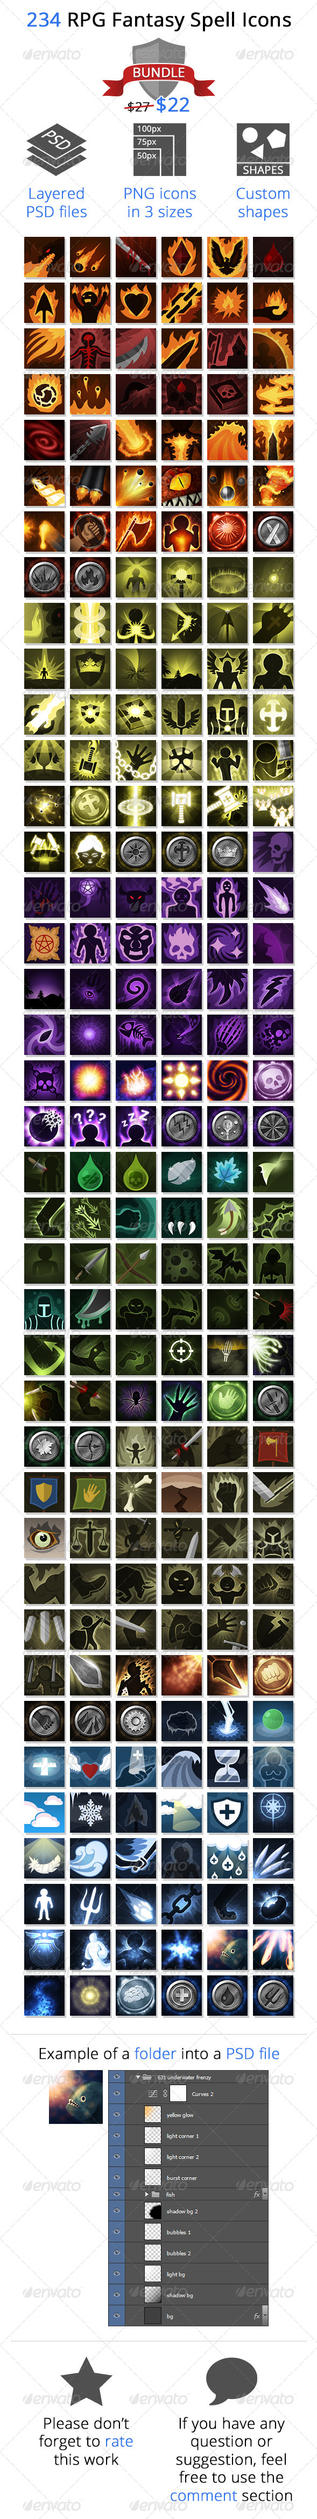 RPG Fantasy Spells Icons Bundle by ruizb